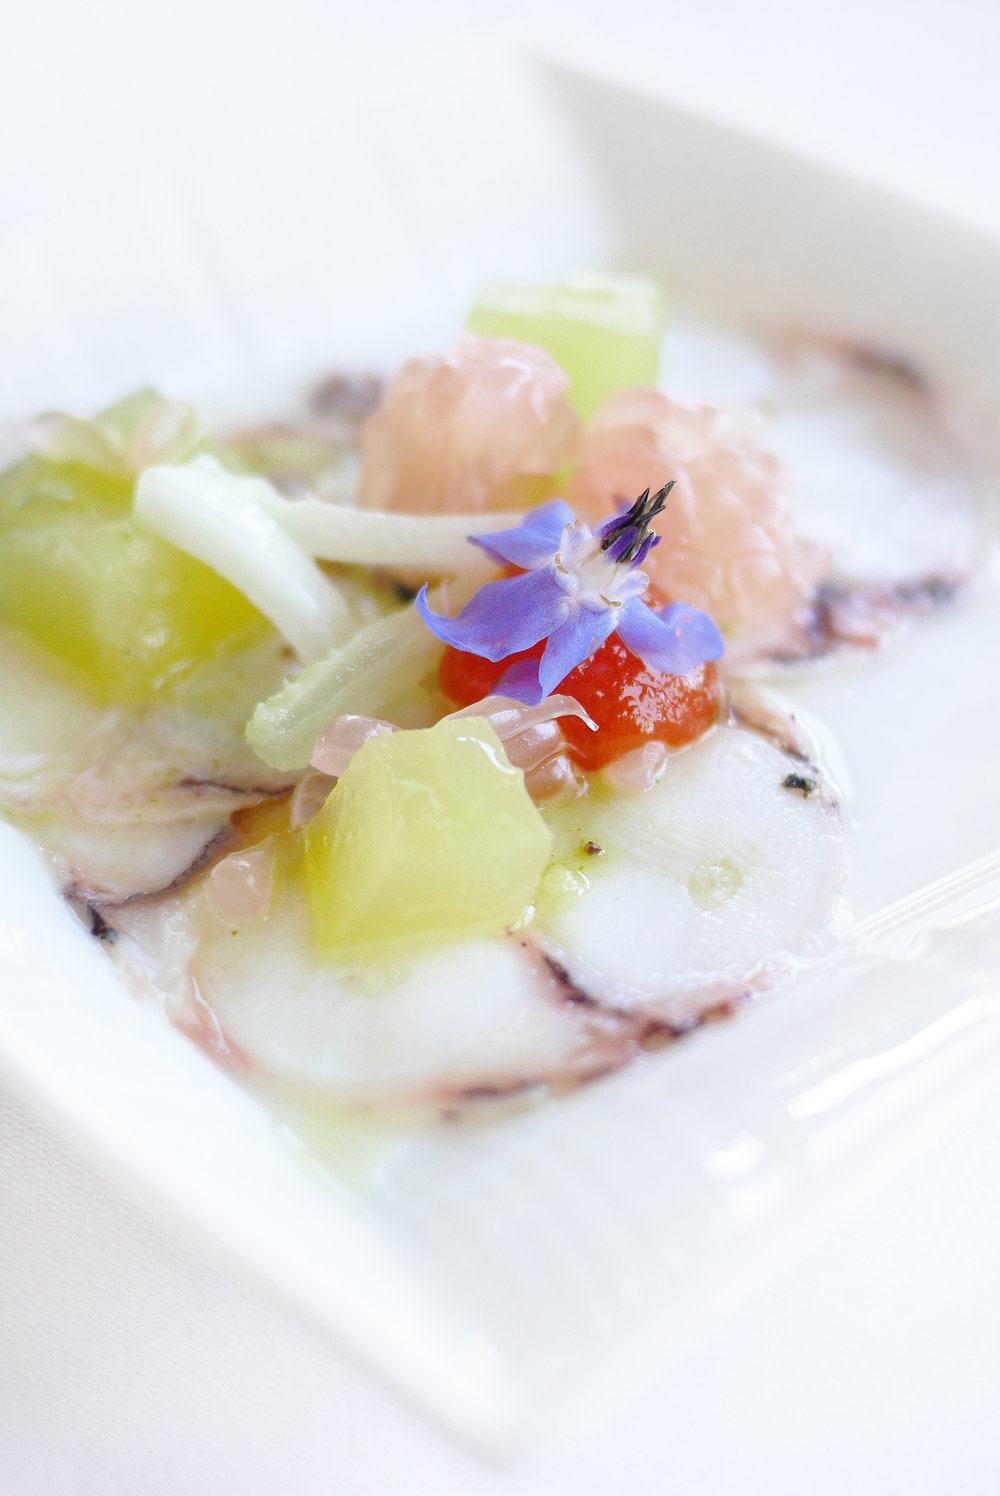 Octopus Carpaccio with Cilantro Citrus Emulsion and Sweet Chili Coulis